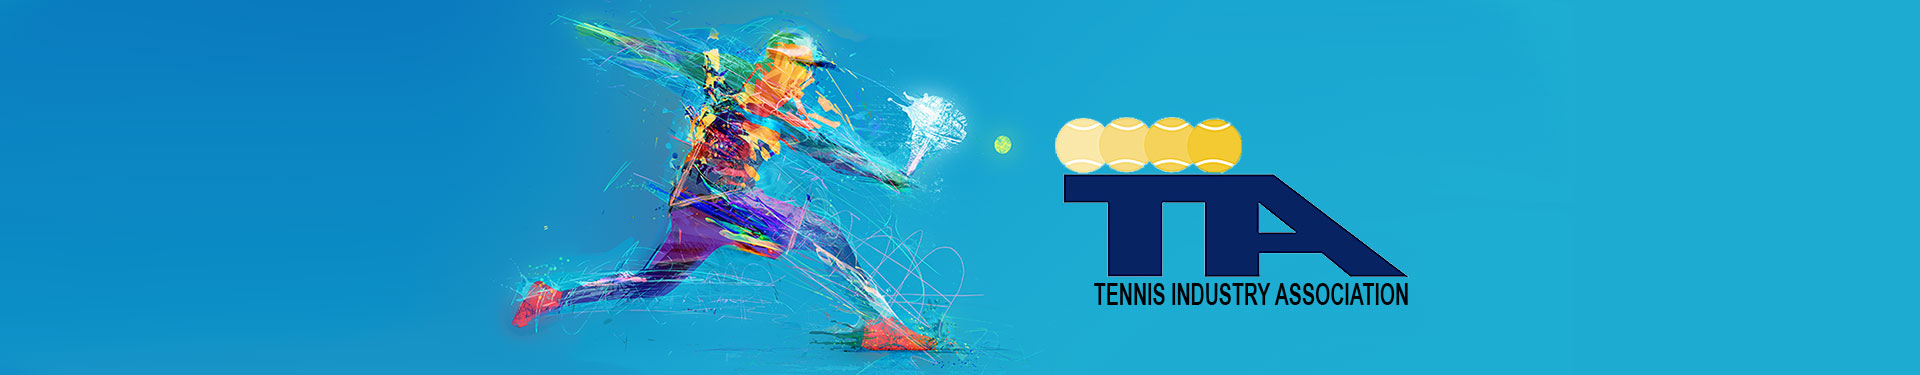 TIA Tennis Industry Association